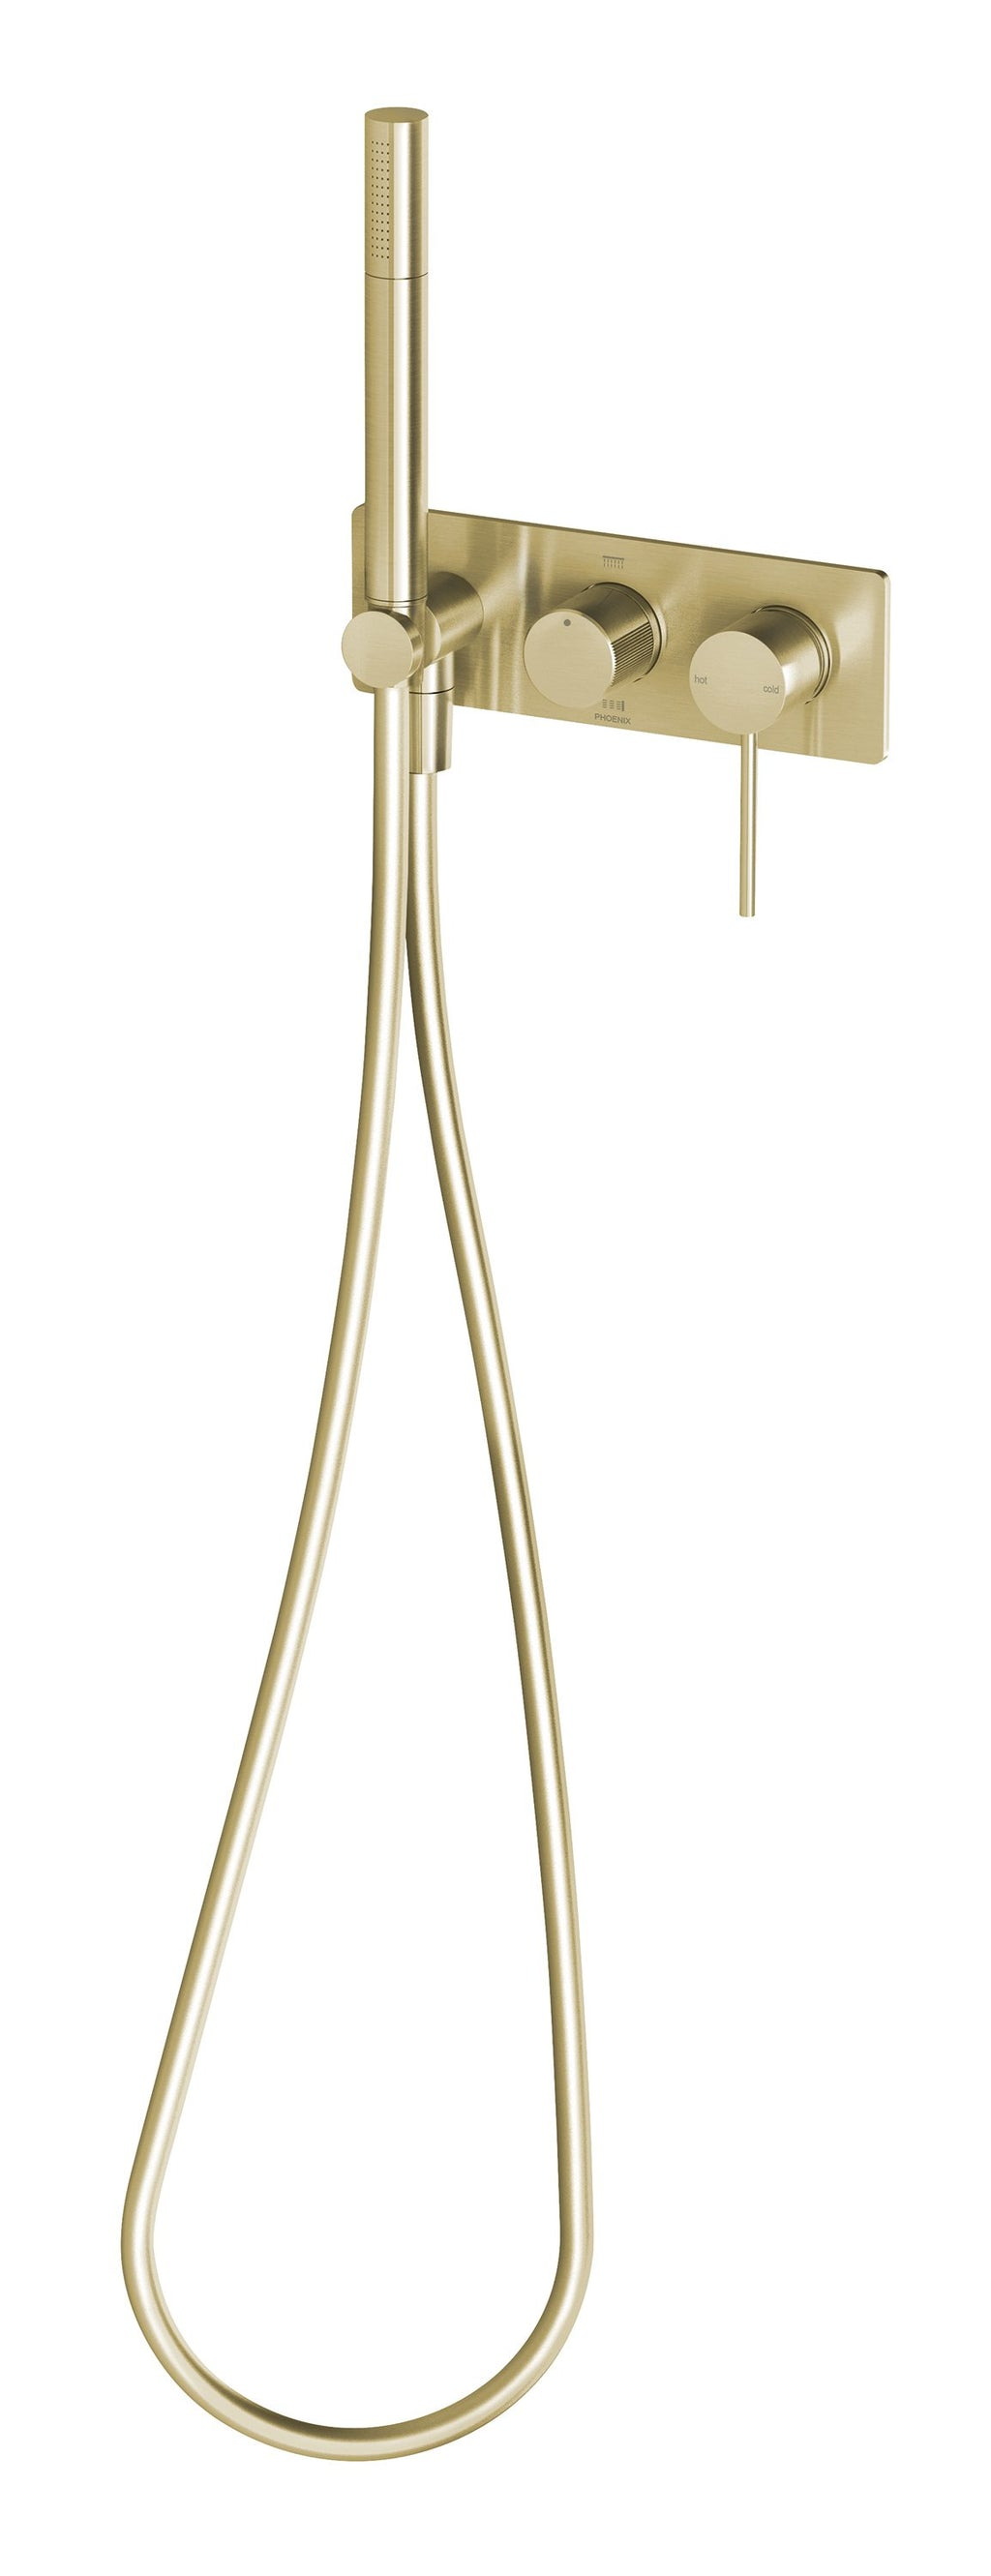 Vivid Slimline Wall Shower System (Brushed Gold)